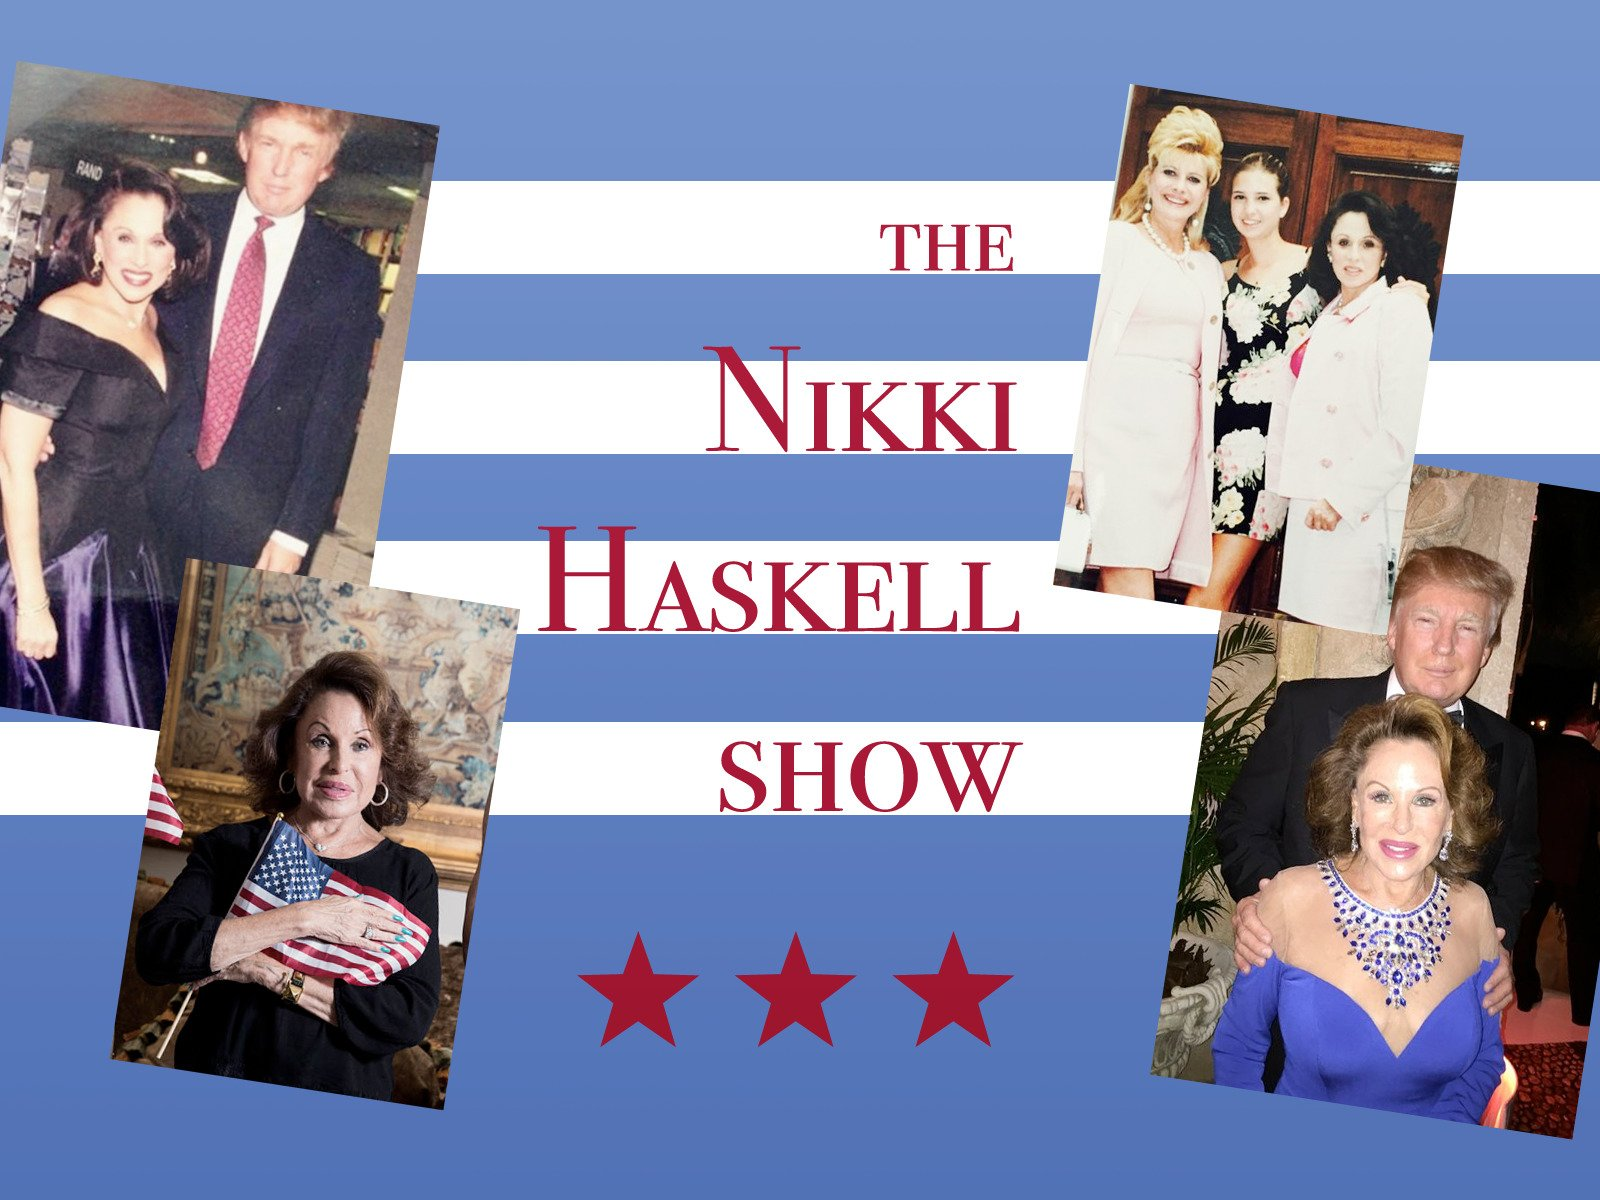 The Nikki Haskell Show - Season 4